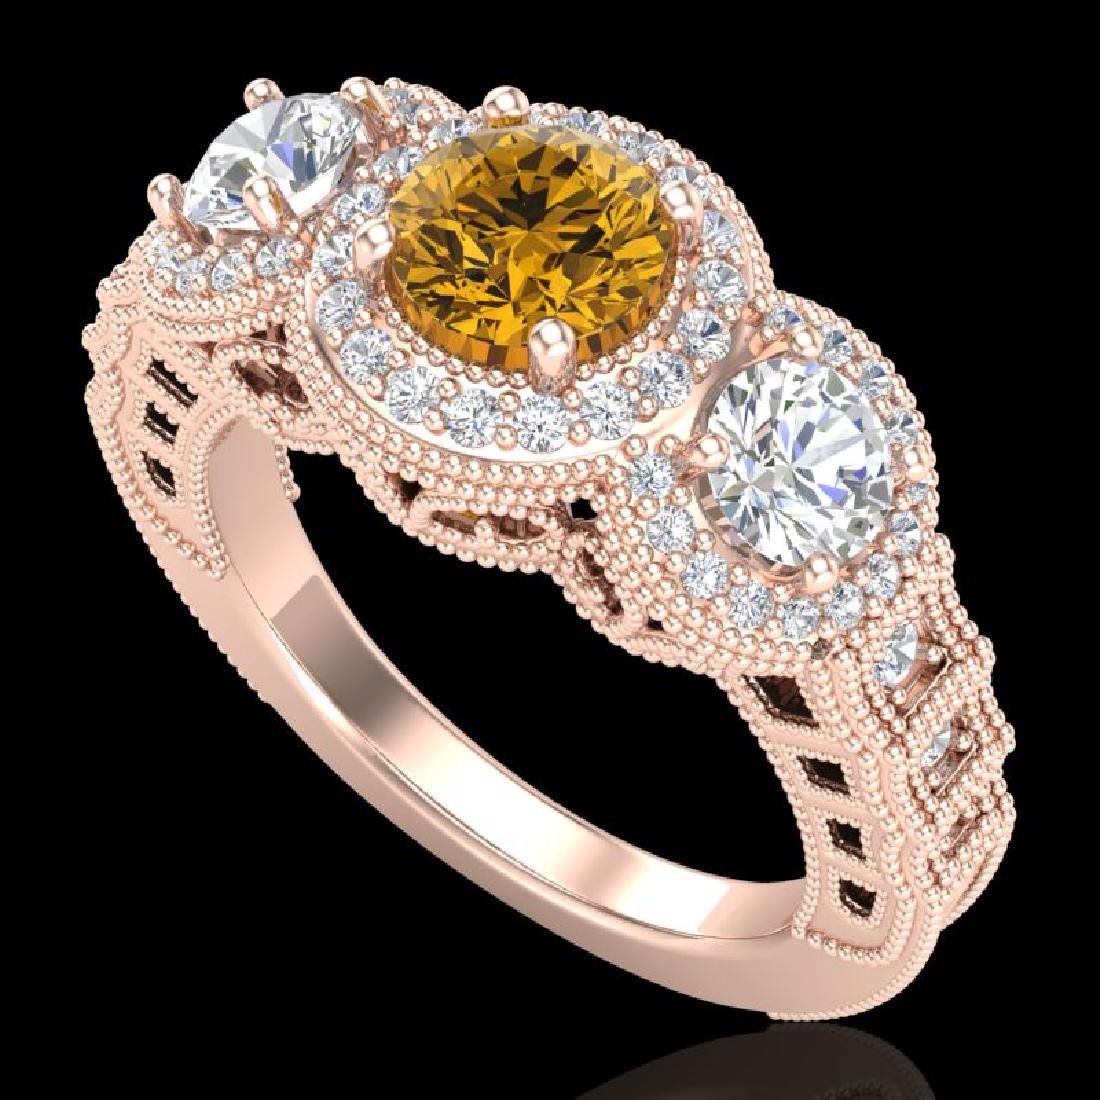 2.16 CTW Intense Fancy Yellow Diamond Art Deco 3 Stone